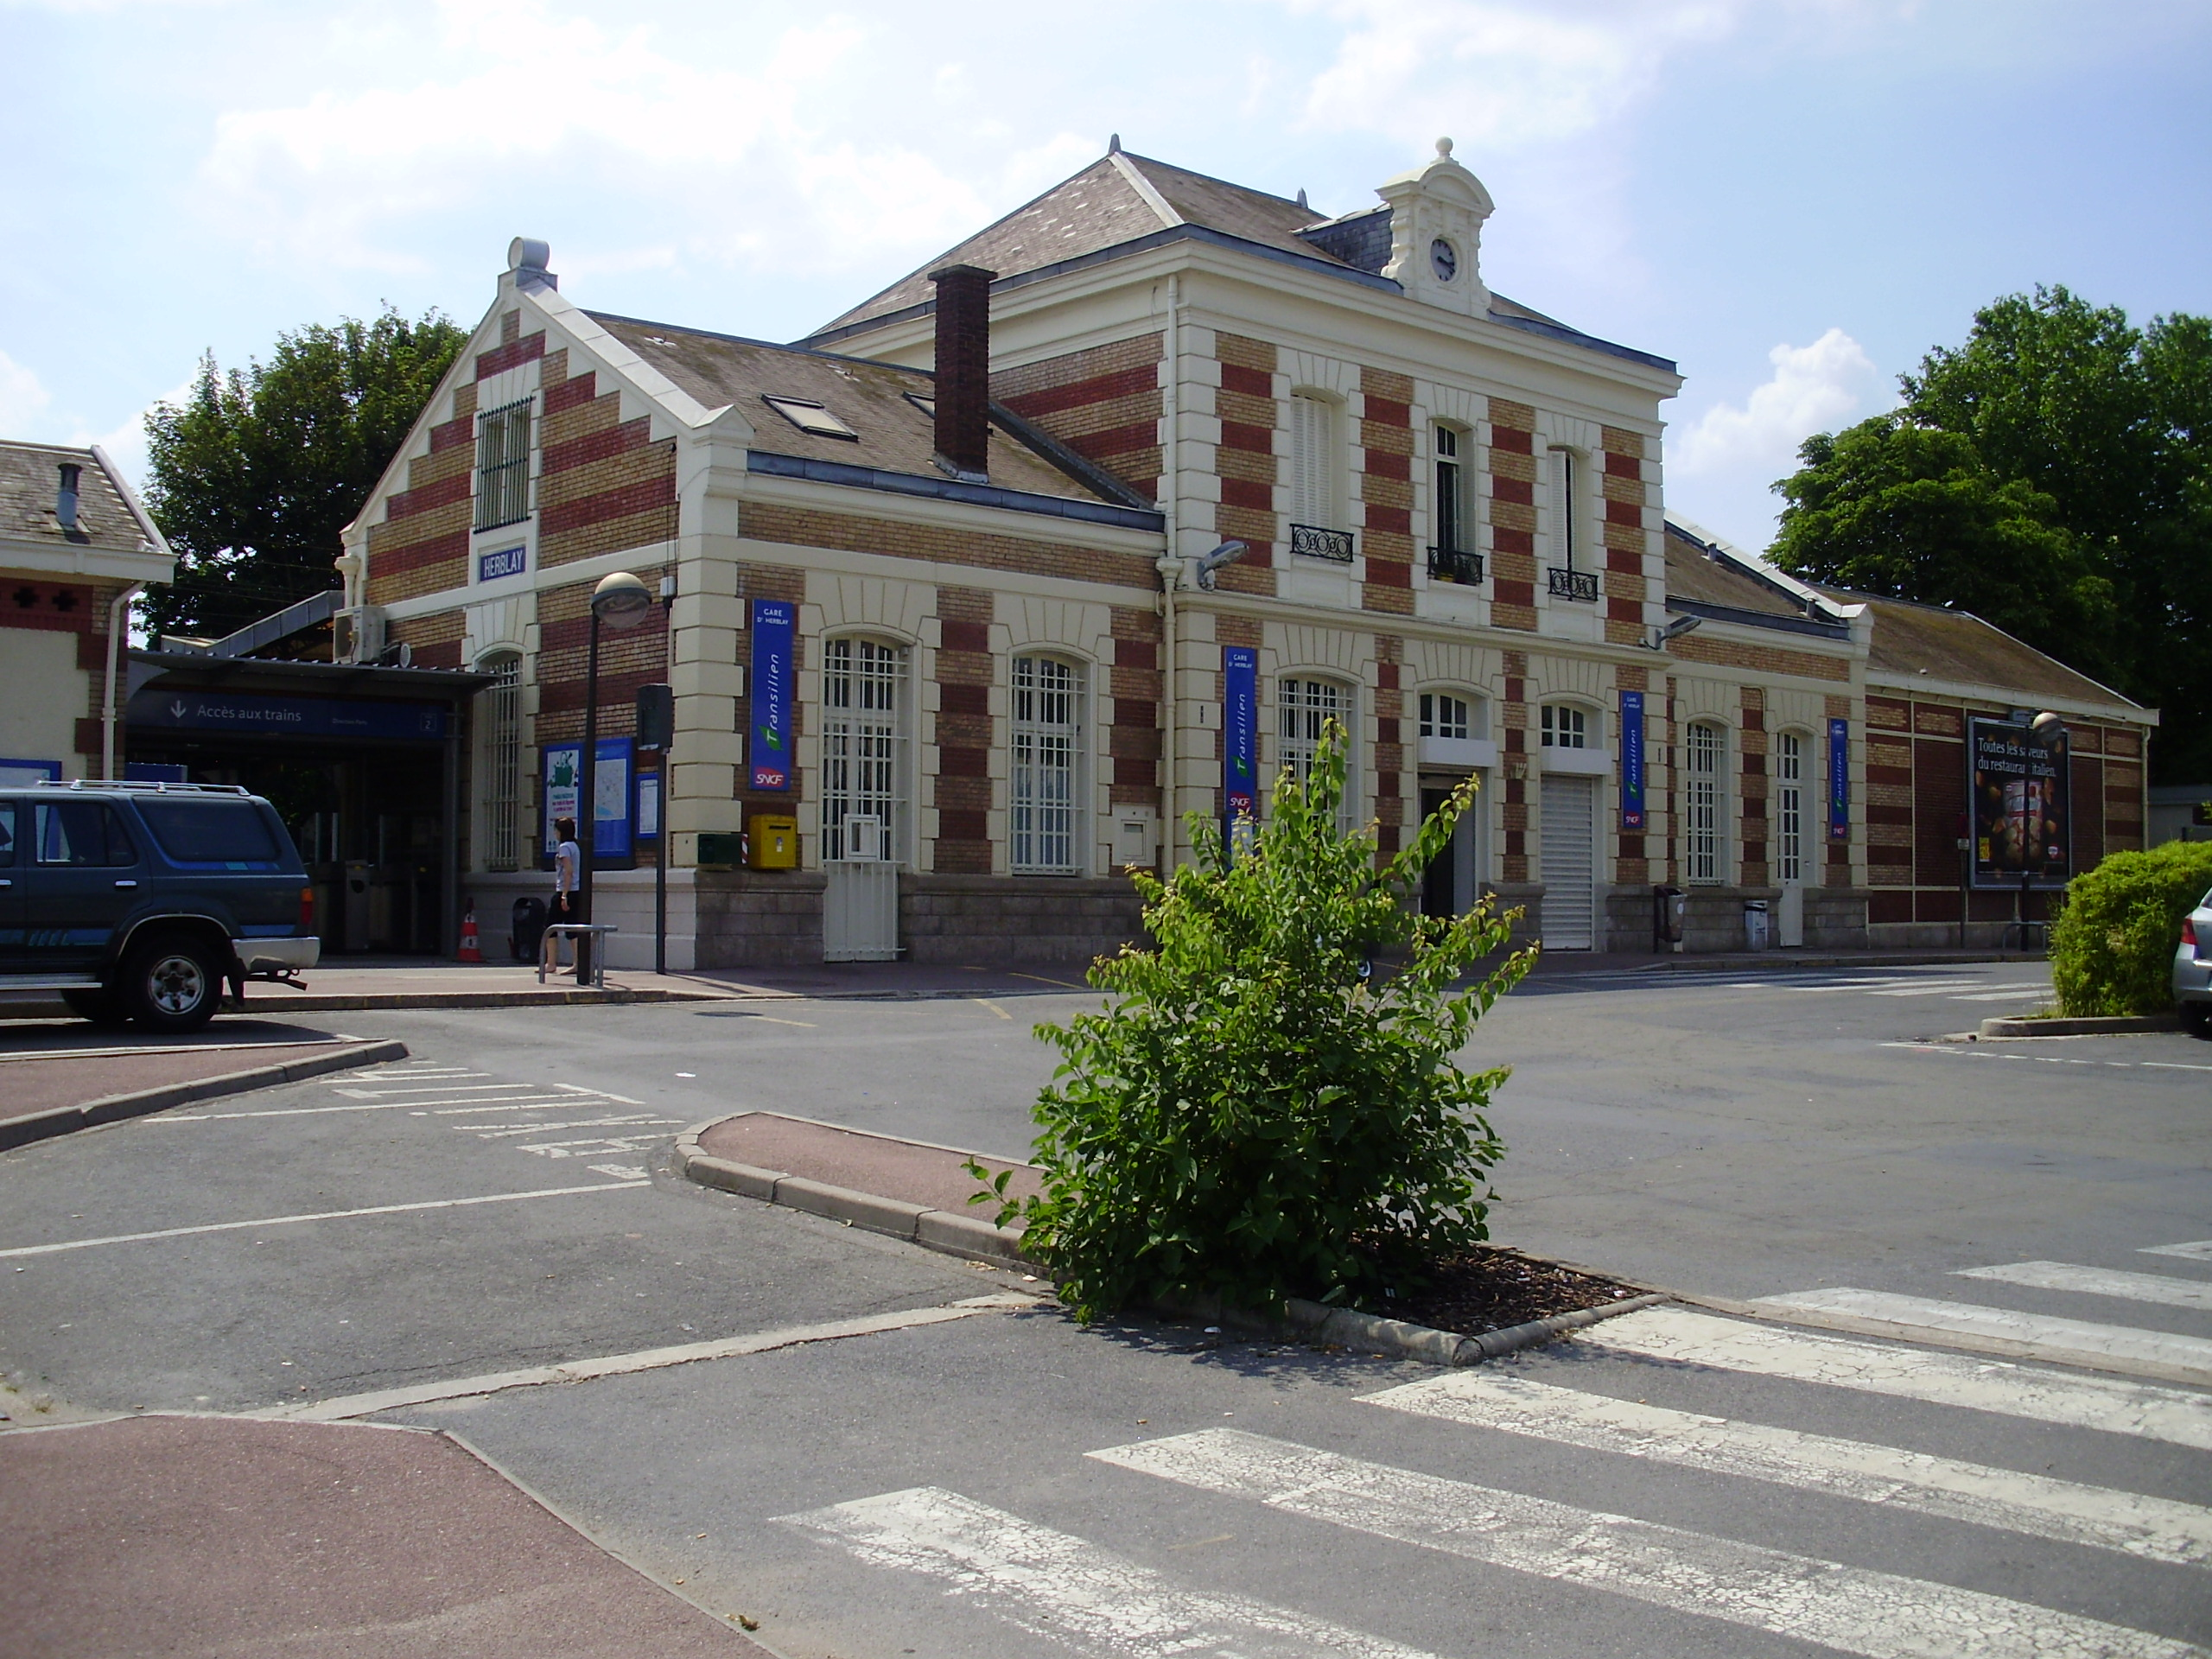 Gare d 39 herblay for Piscine herblay